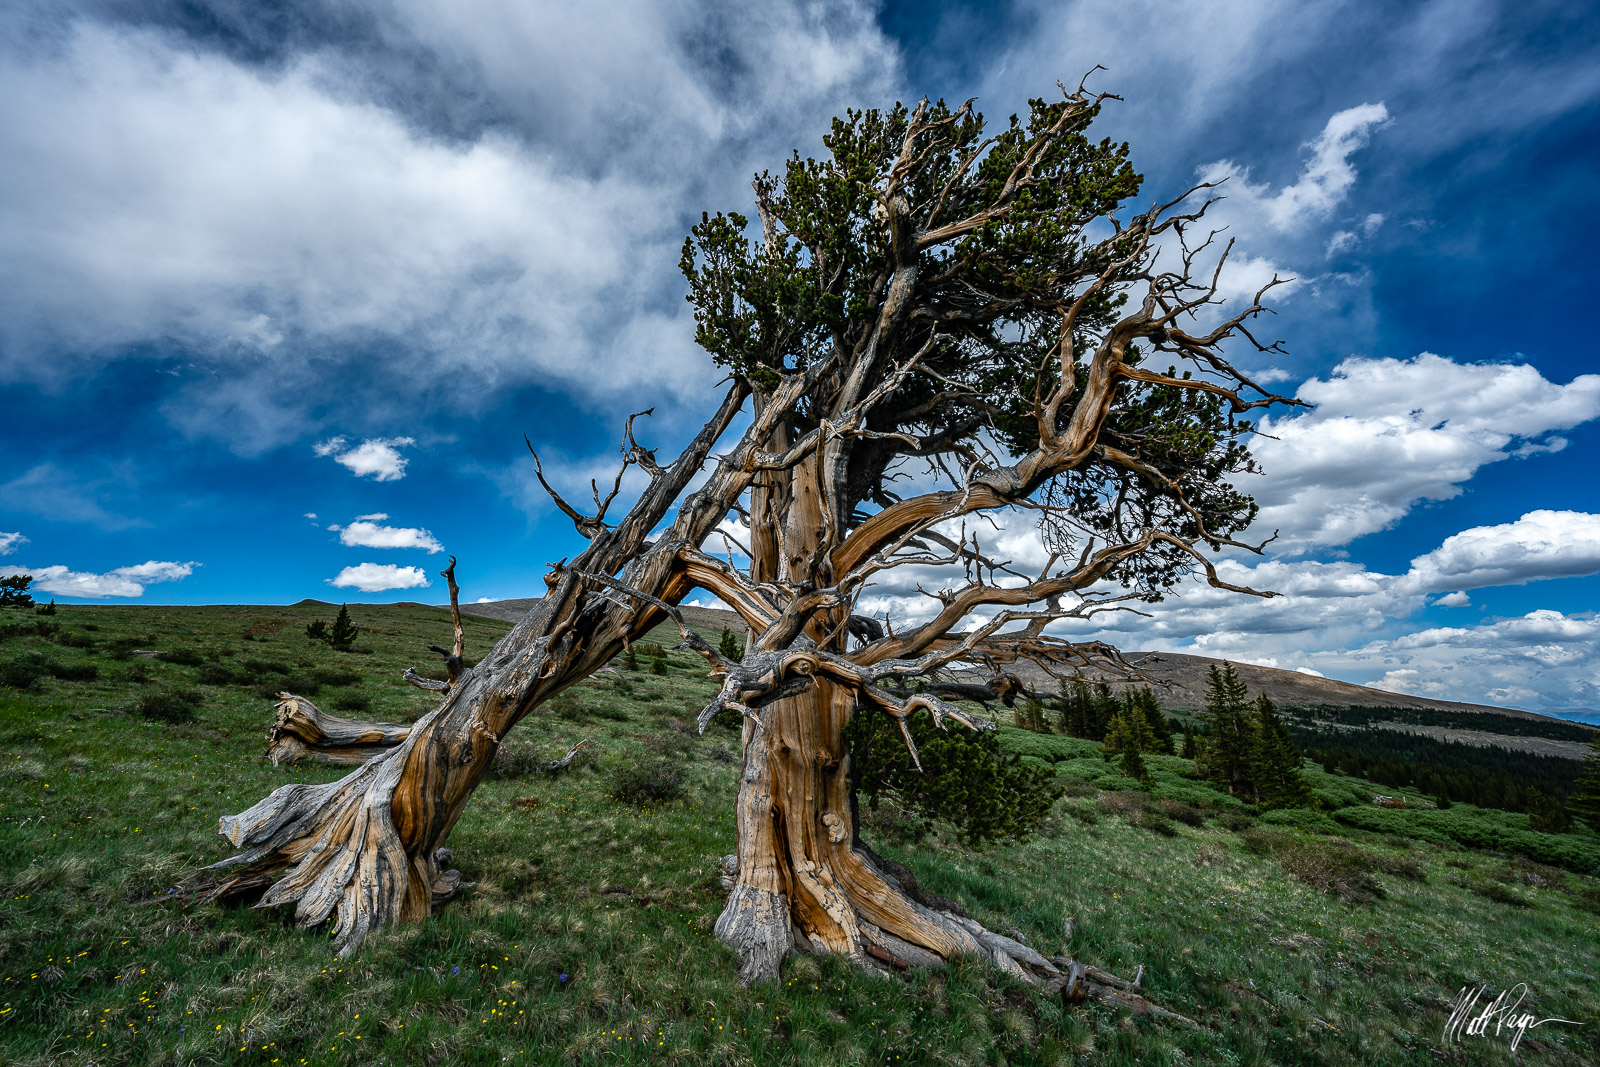 I found this amazing pair of ancient Bristlecone Pine trees on the slopes of some high mountains near Fairplay, Colorado. I was...